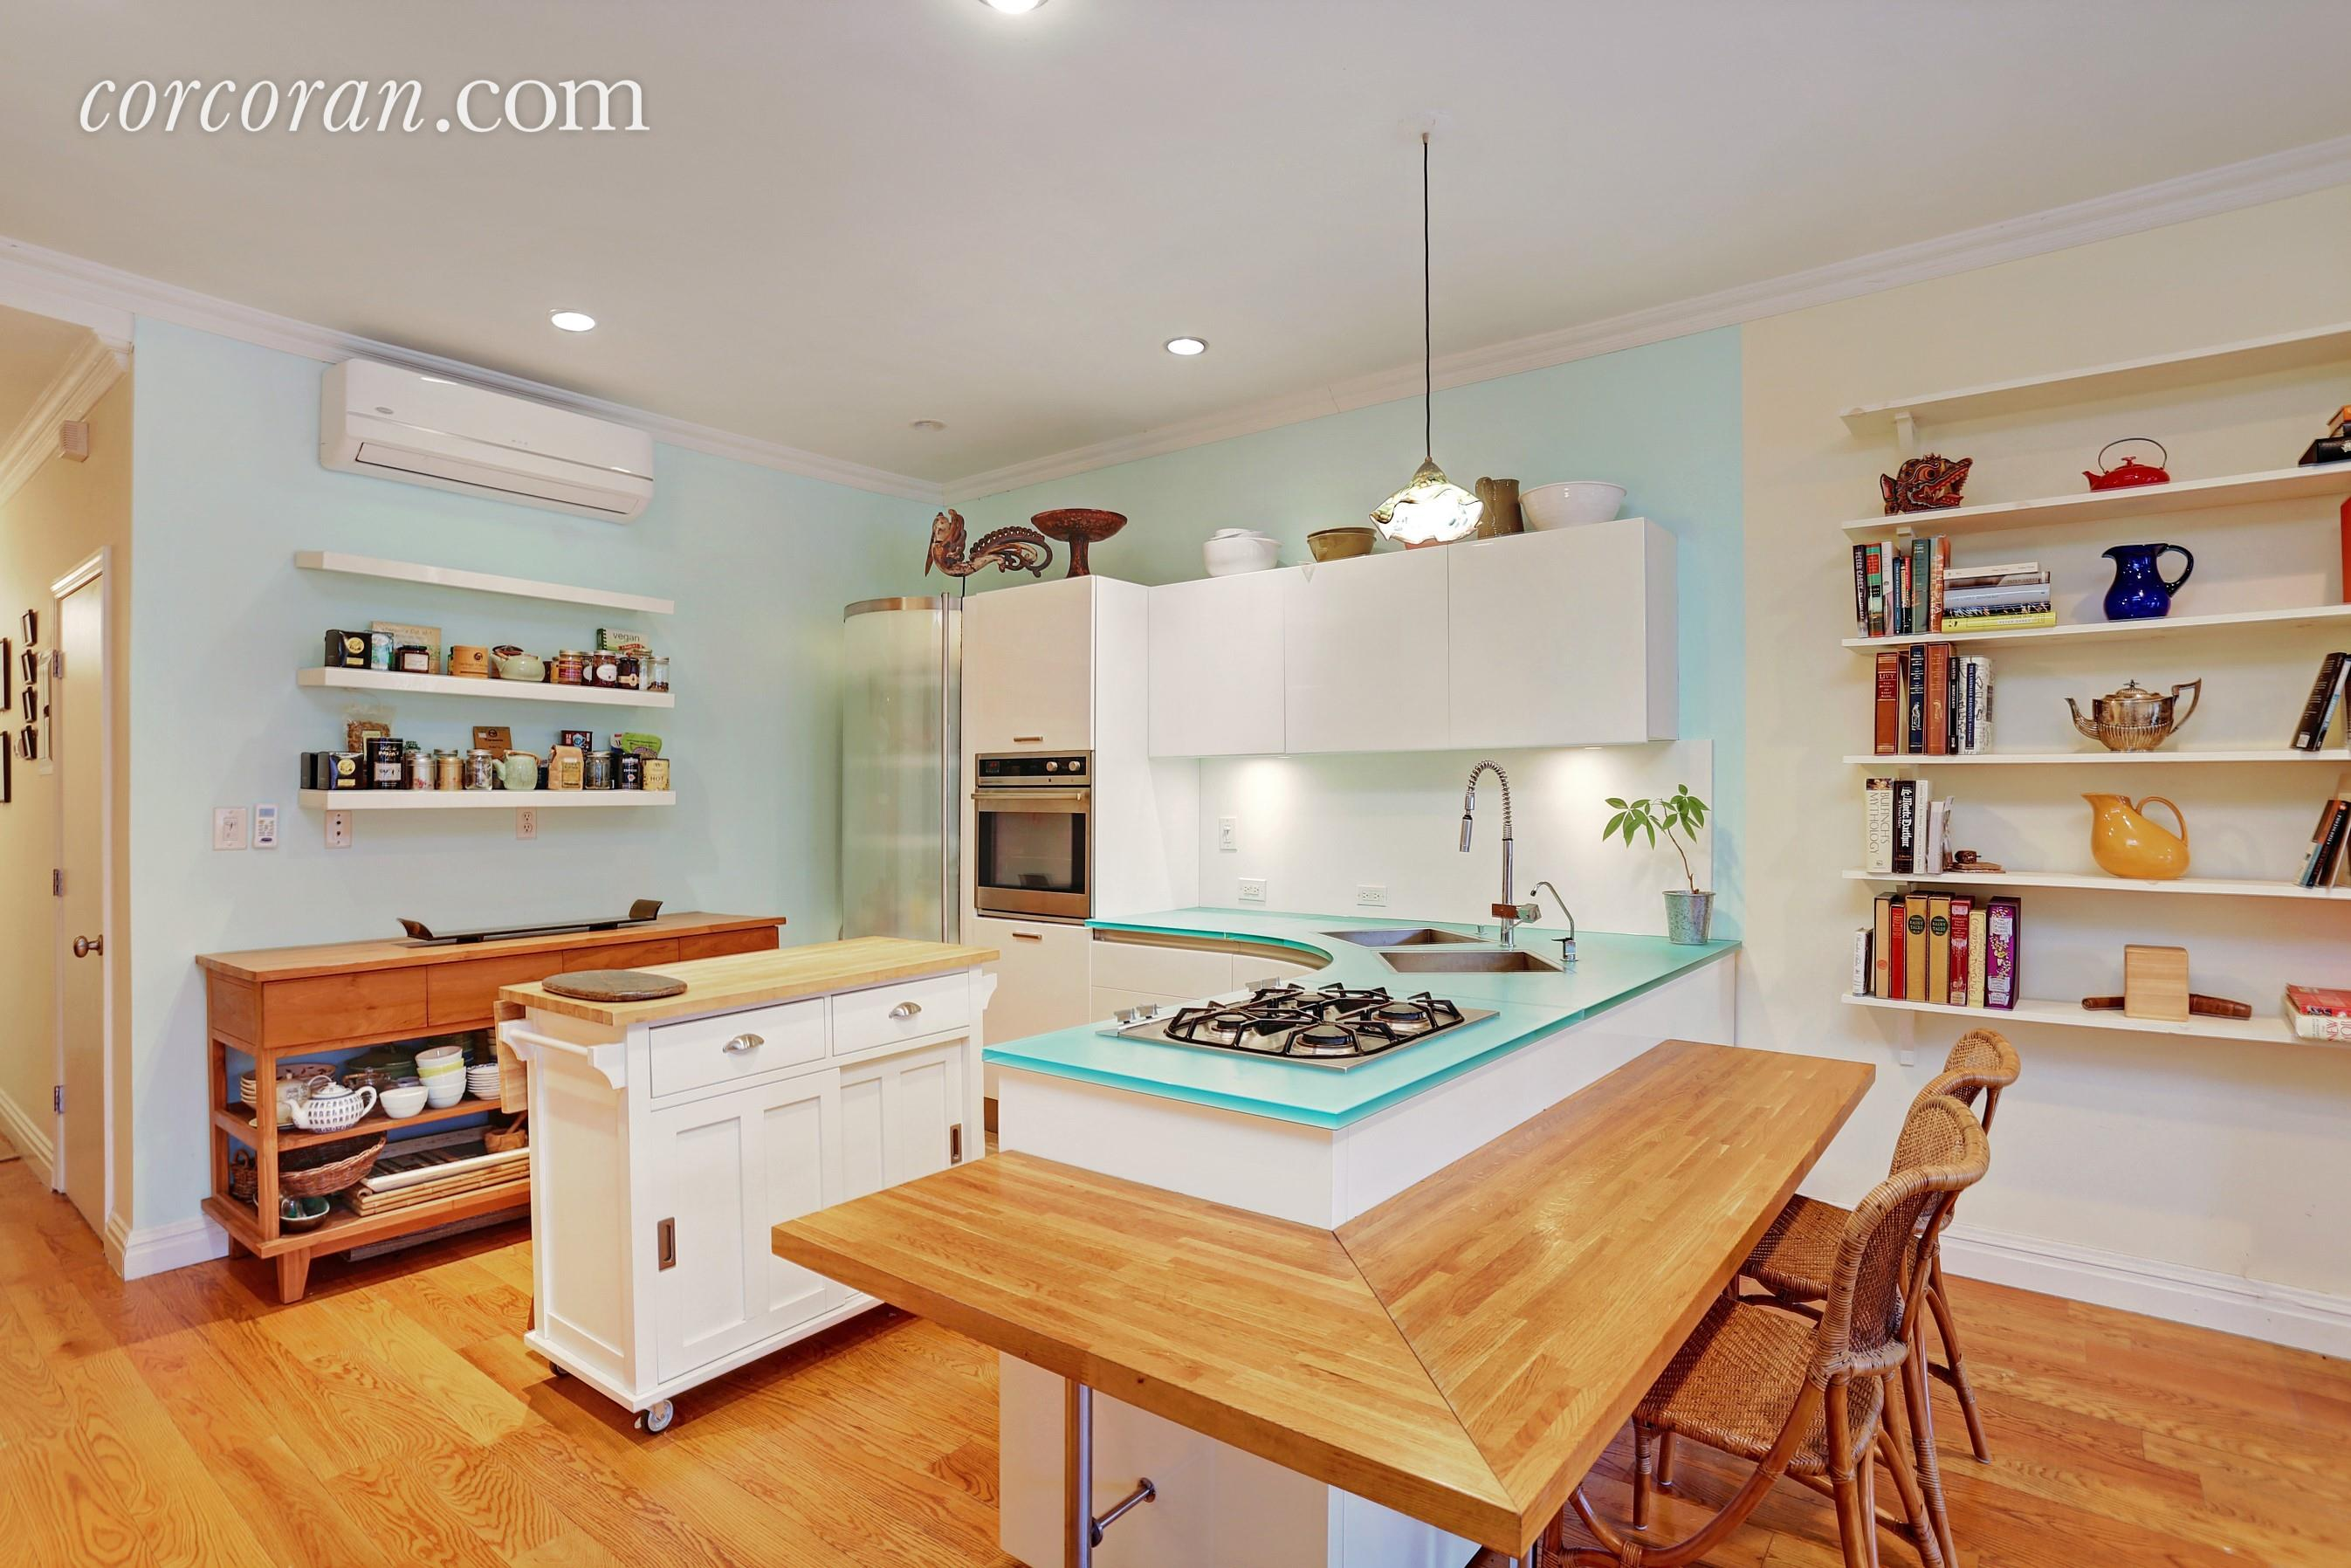 118 St Marks Place, kitchen, park slope, duplex rental, eat-in kitchen